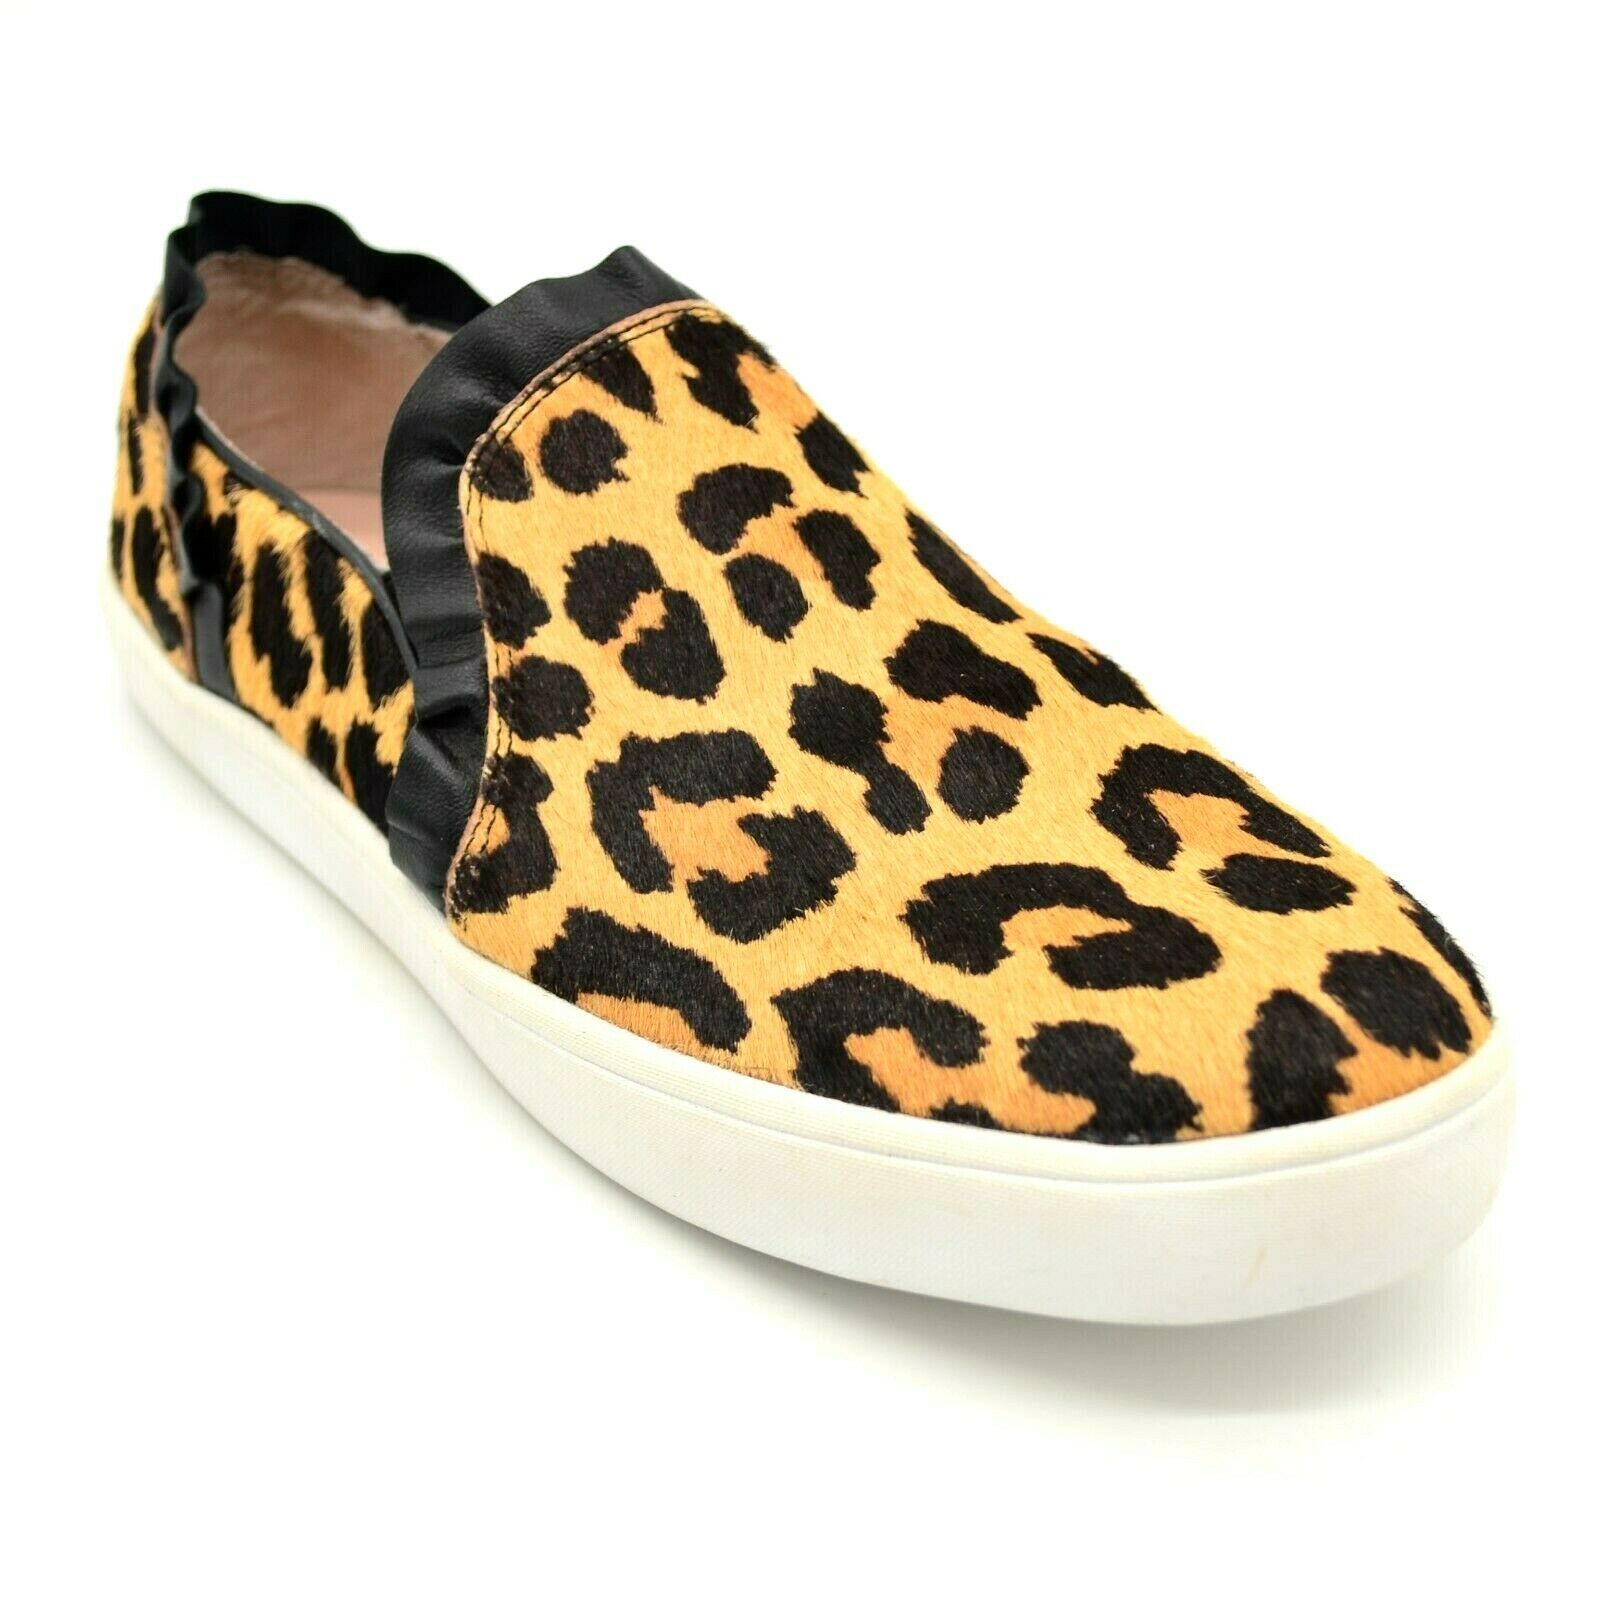 Kate Spade Womens Lilly Flat Loafer Size 7M  Brown Leopard Print Cushion NEW - $35.76